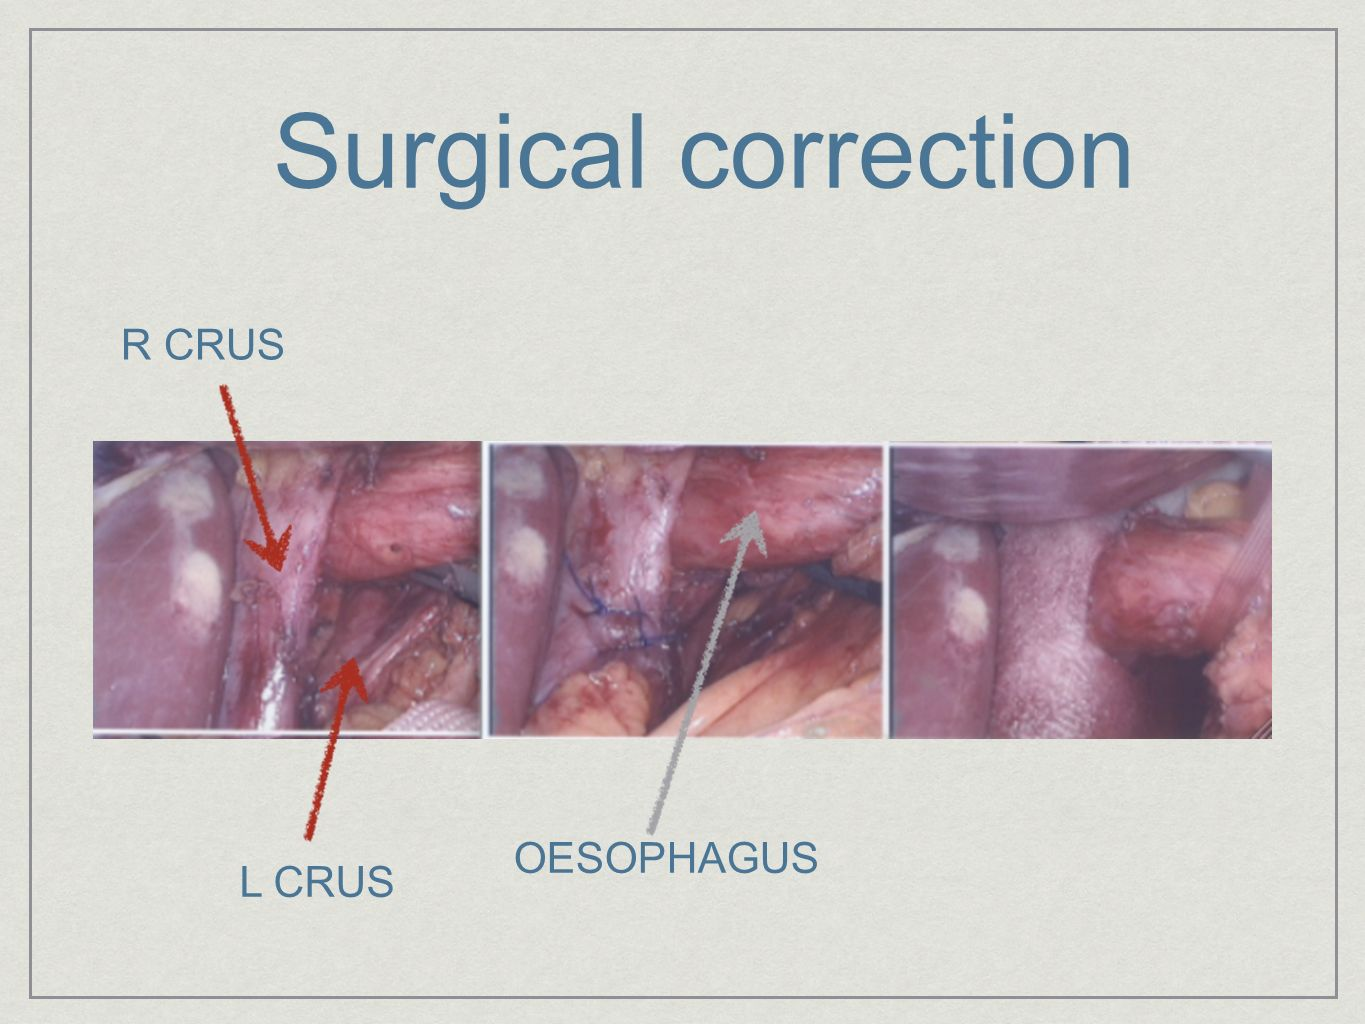 Surgical correction R CRUS OESOPHAGUS L CRUS